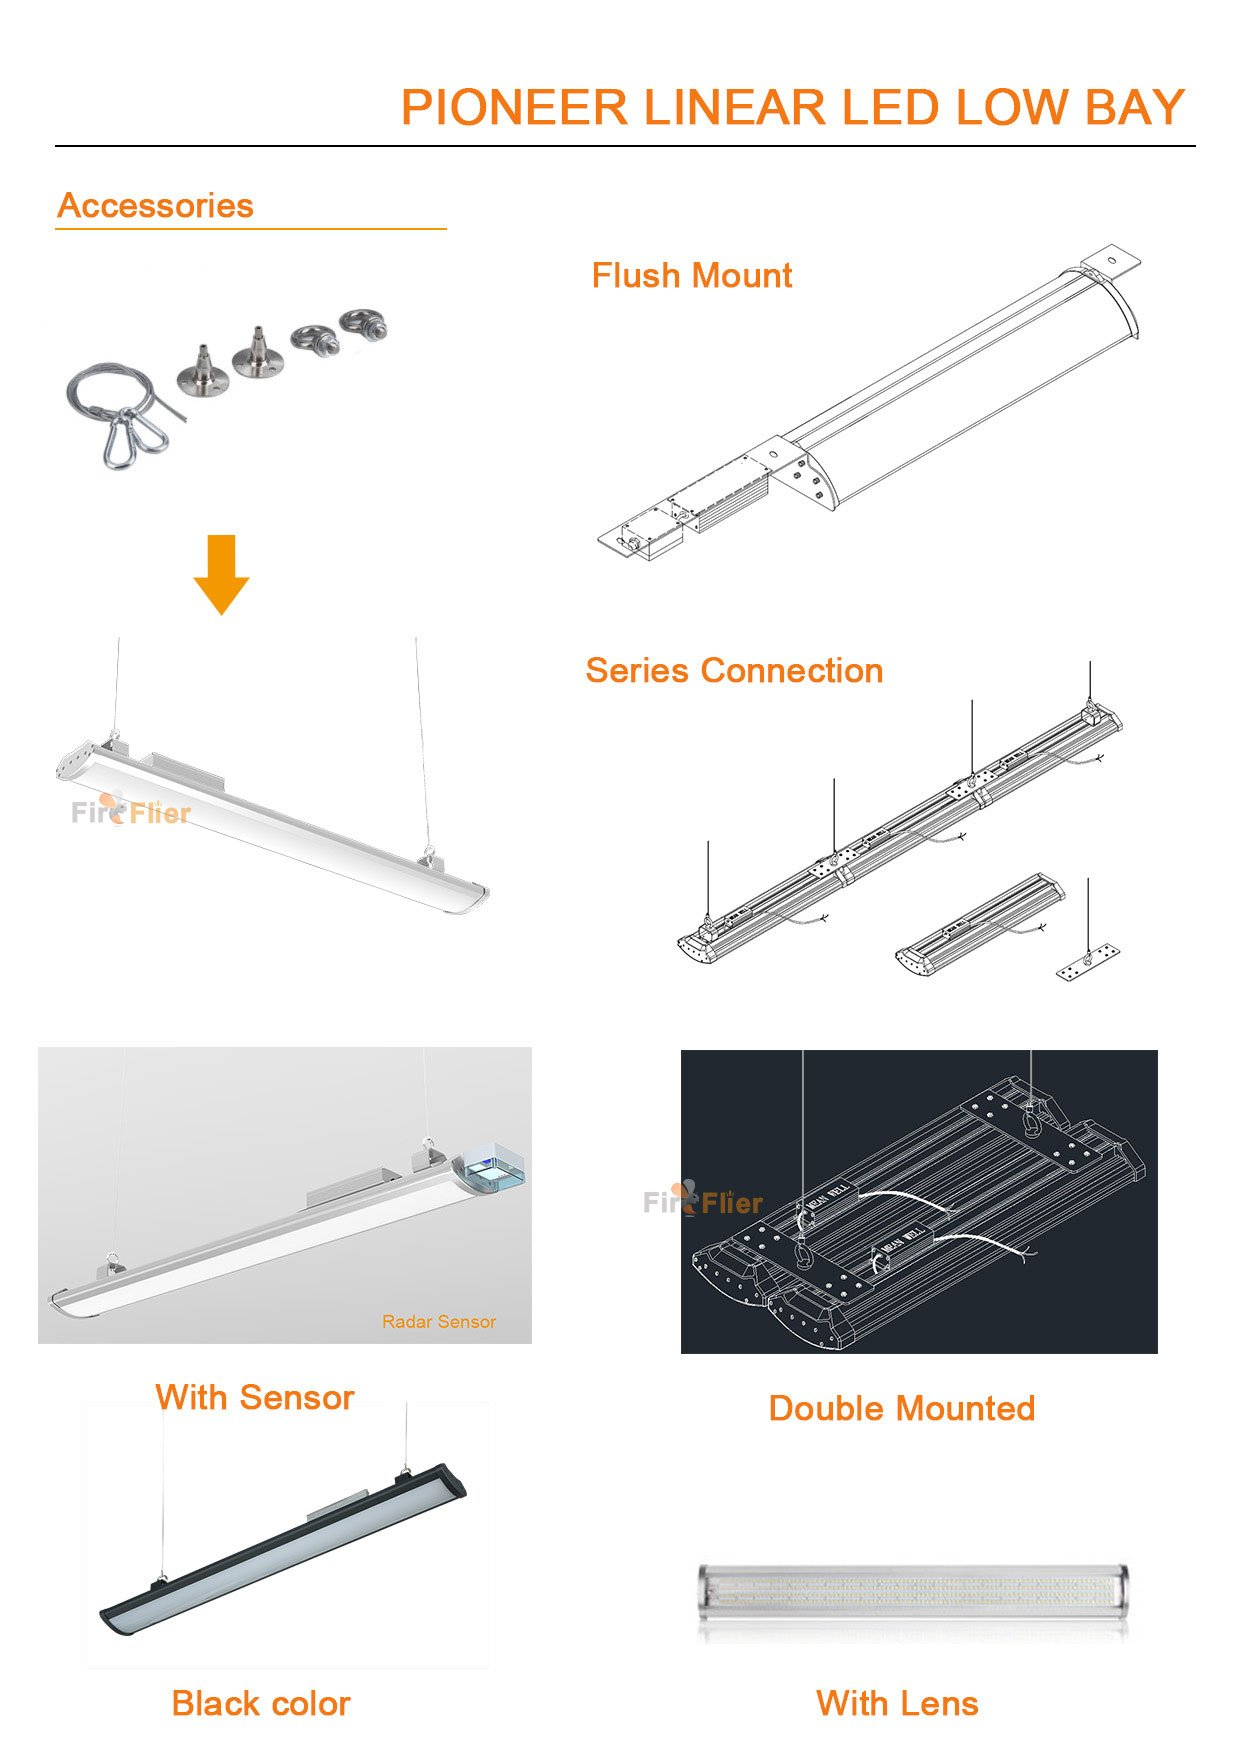 Pioneer led linear high bay Accessories